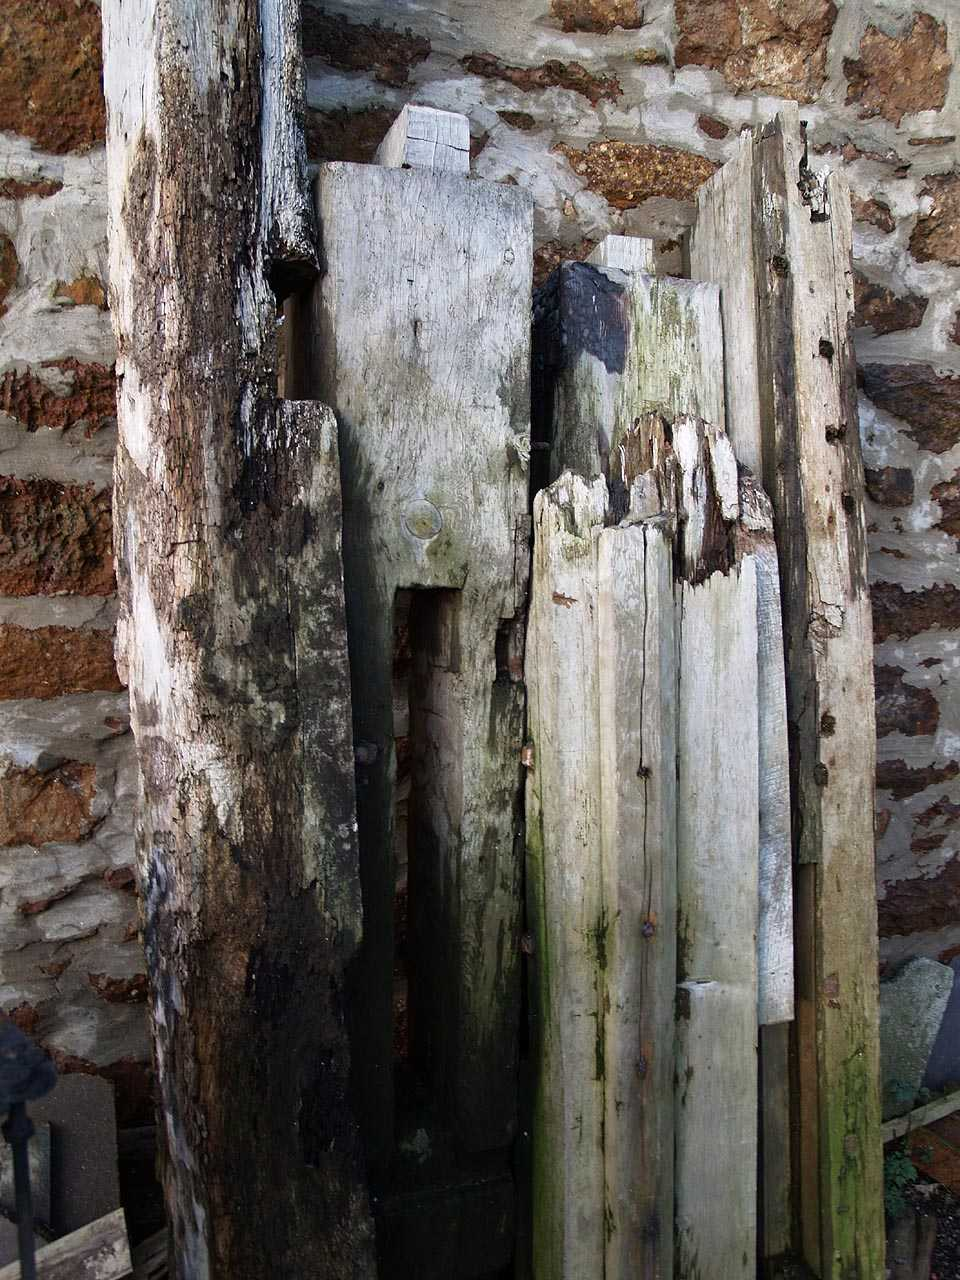 City Dulas, Felin Dulas Watermill - Internal timbers waiting to be burnt